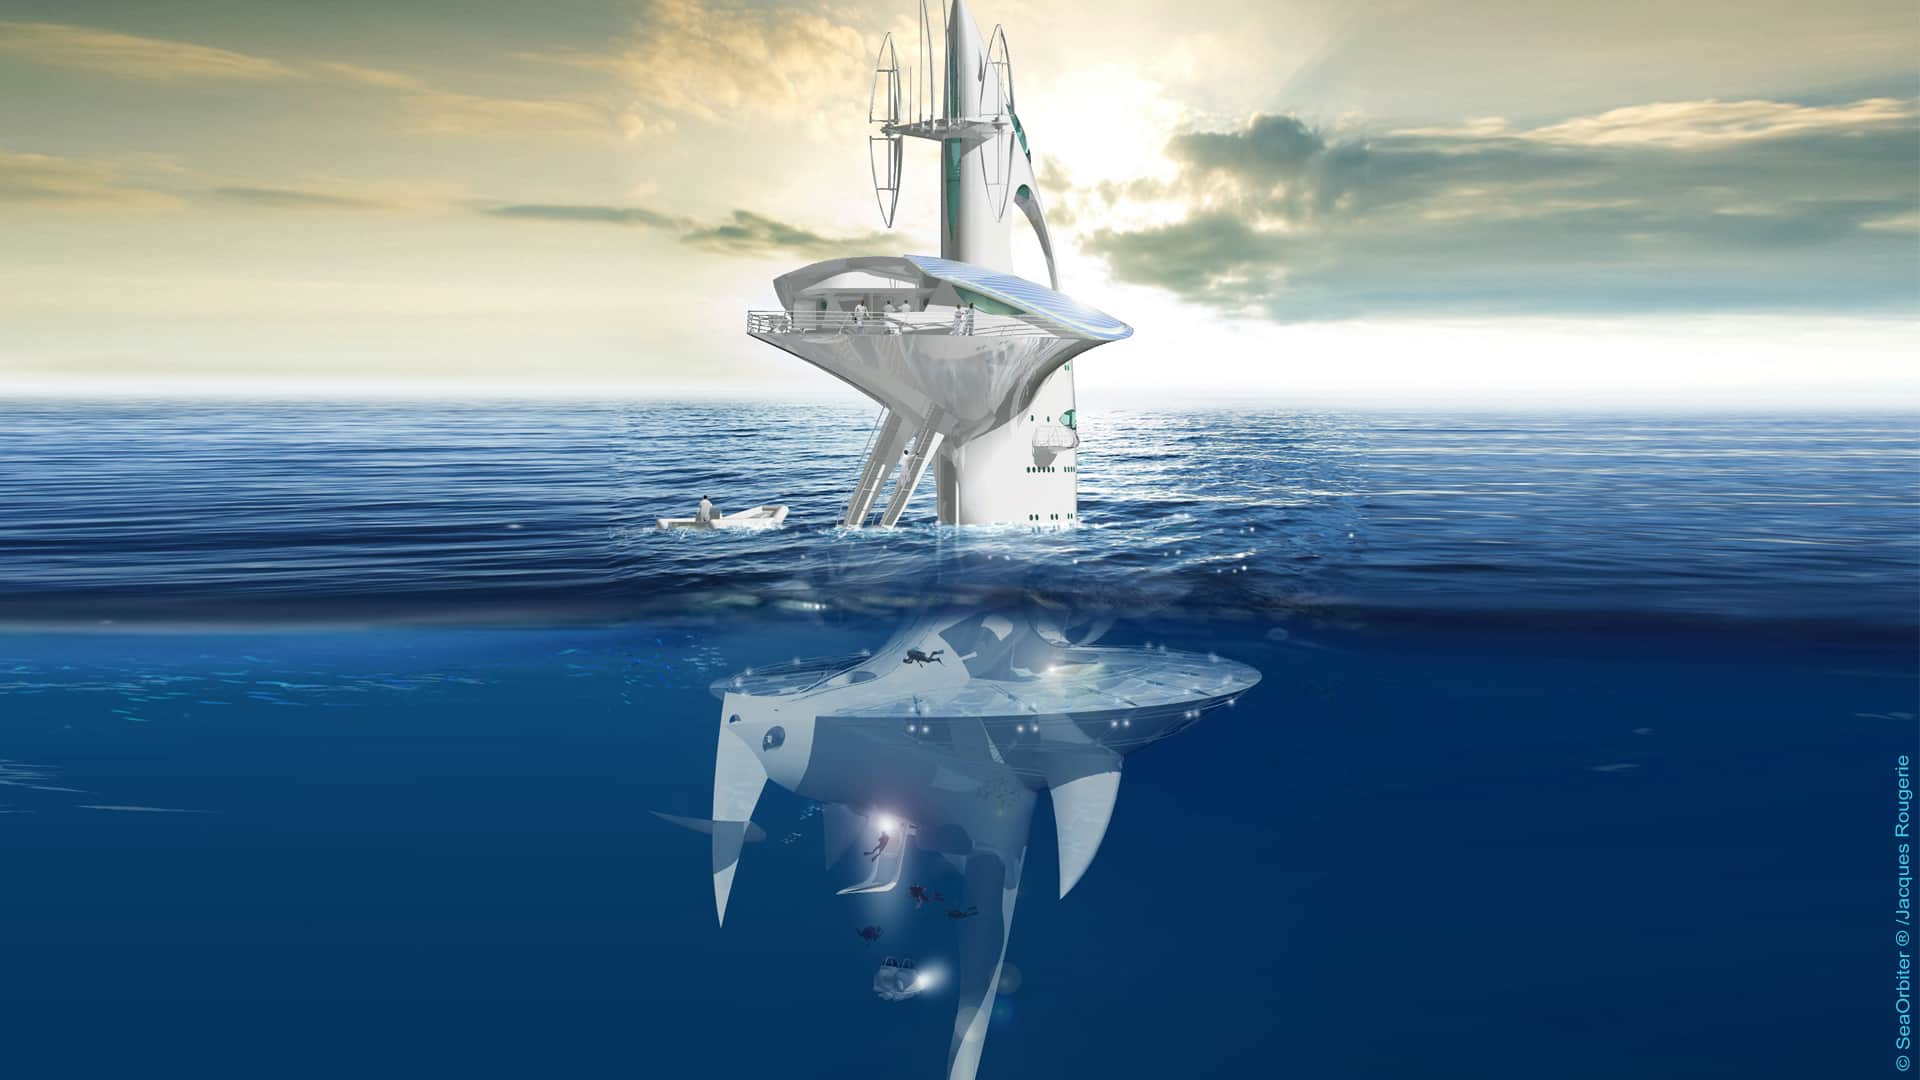 Back In 1977 Architect Jacques Rougerie Built The Galathee First Underwater Habitat Design A Concept That Was Beyond Impressive For Period